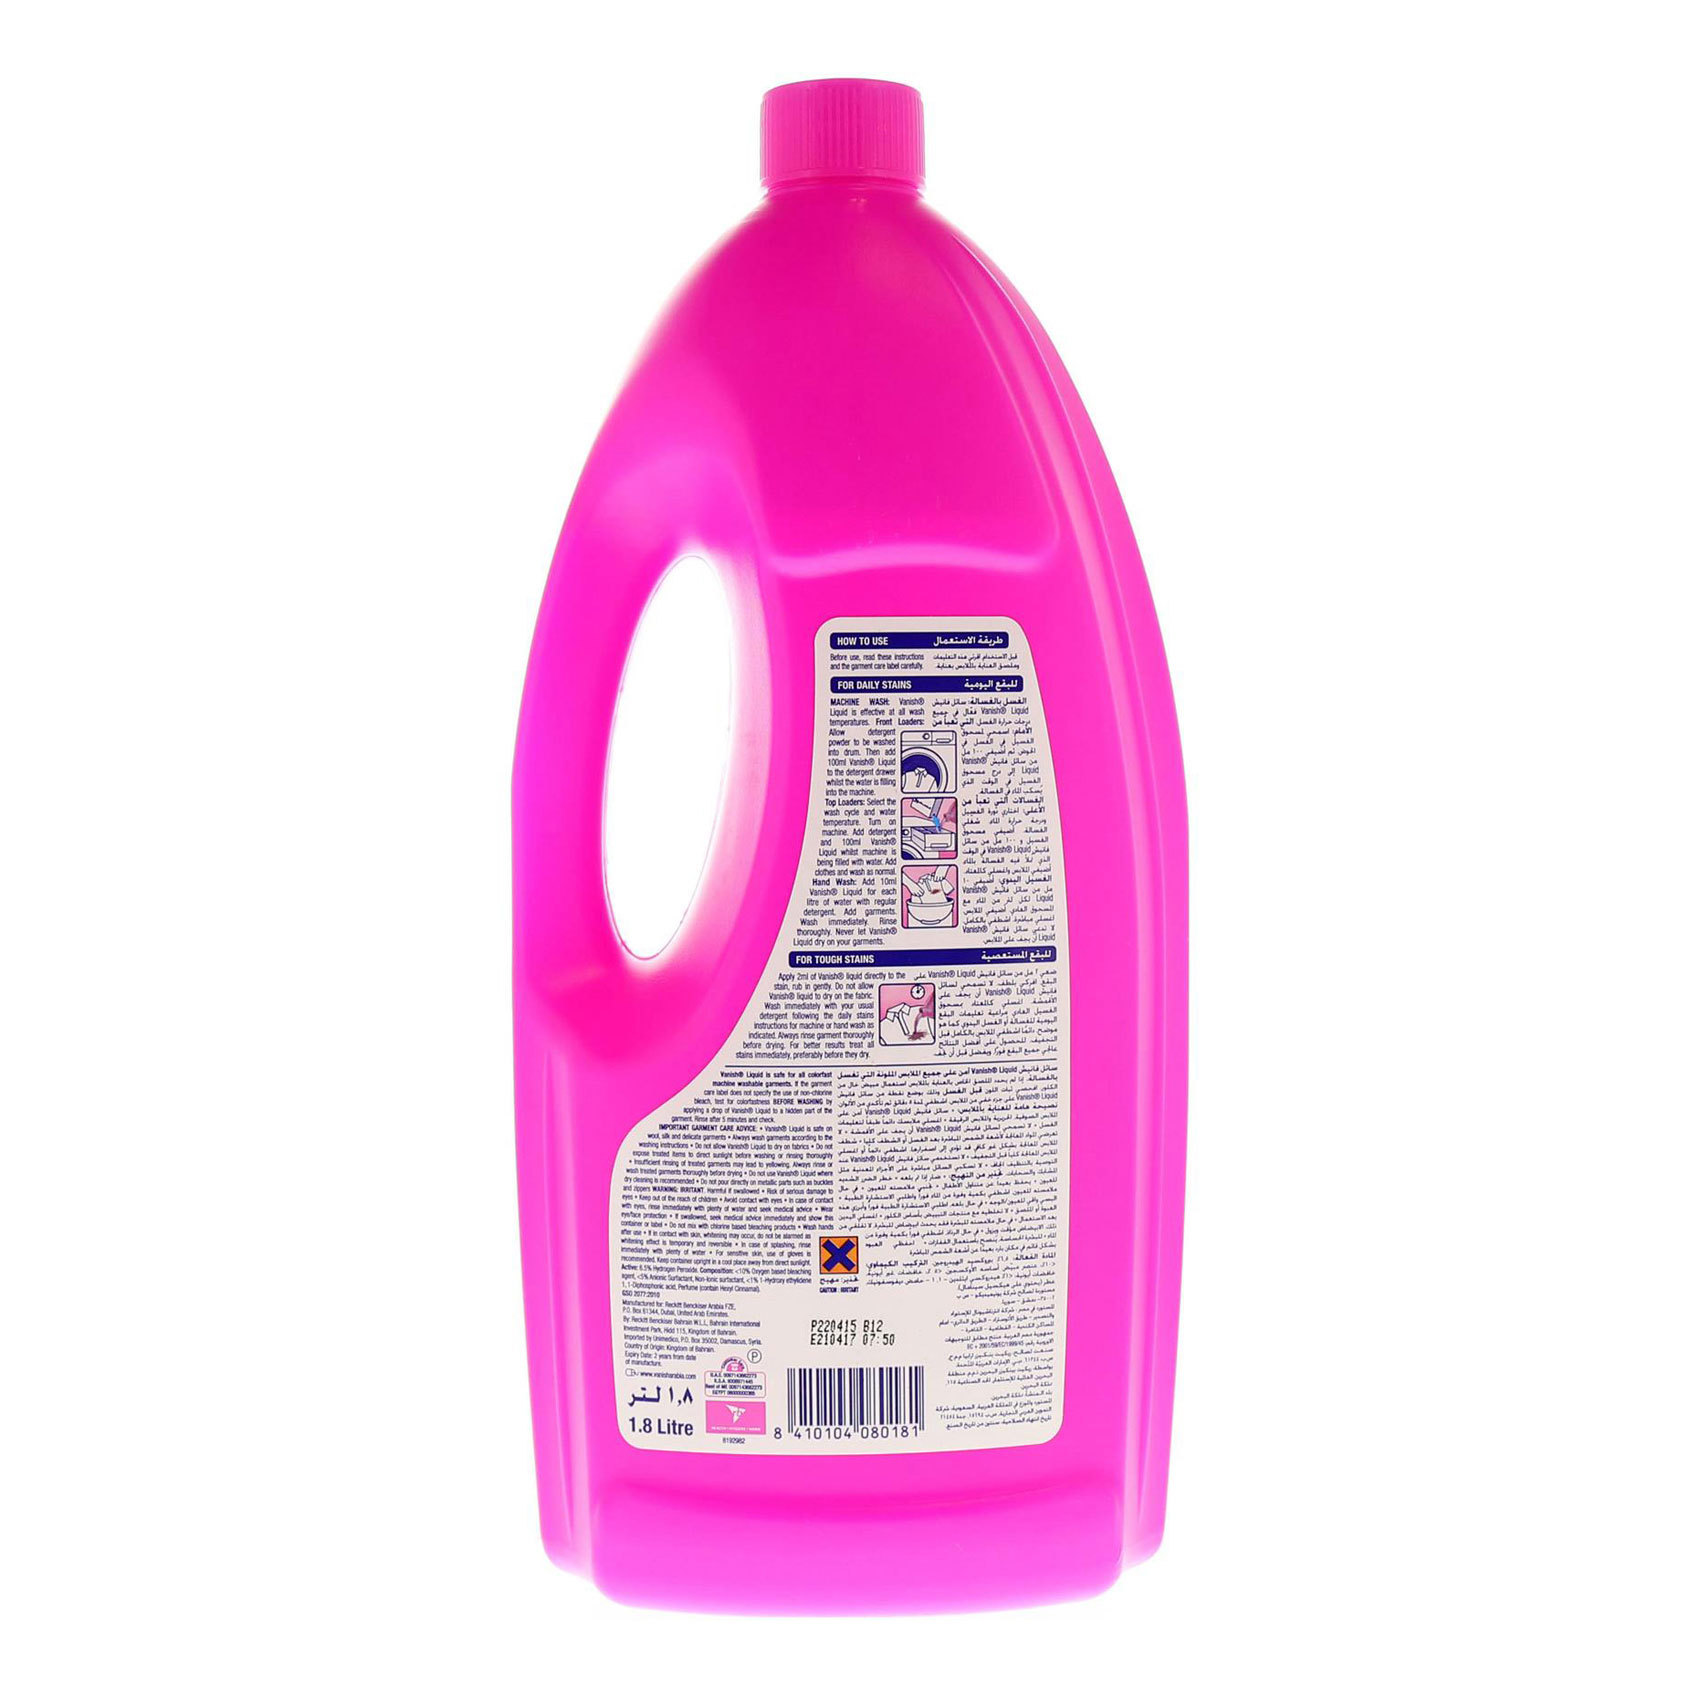 buy vanish stain remover liquid pink 1 8l online in uae carrefour uae